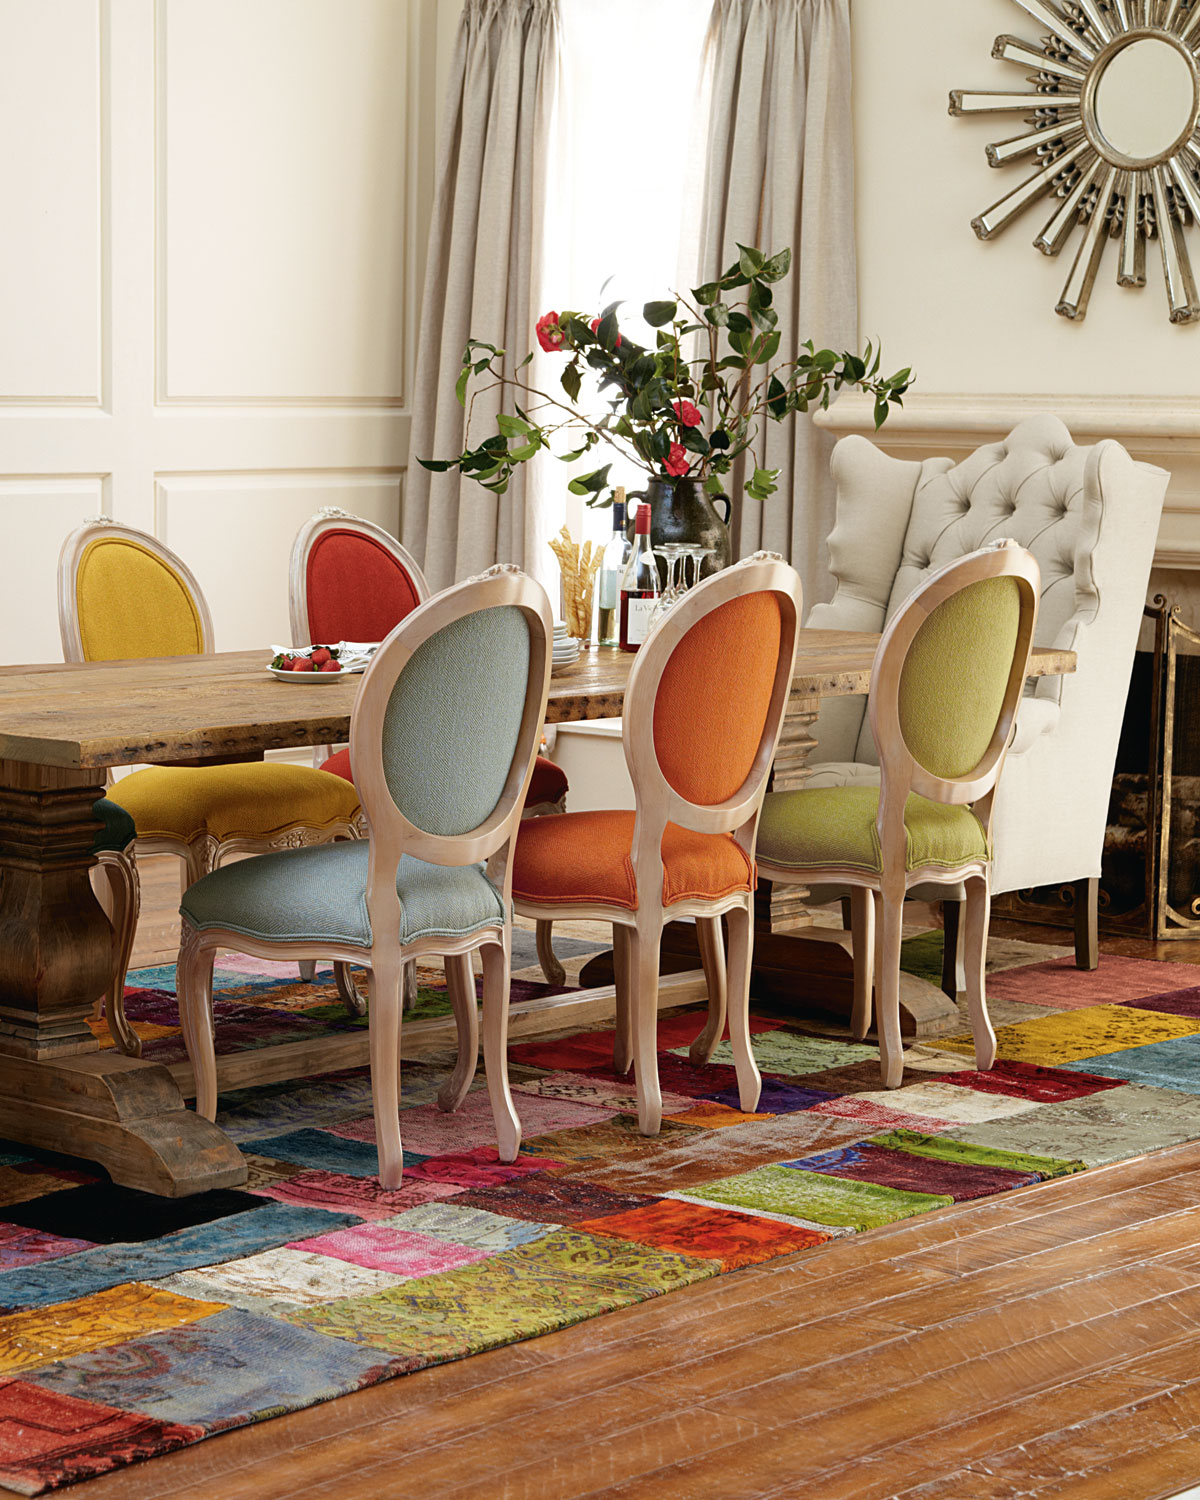 deco mix match salle a manger chaise coloree